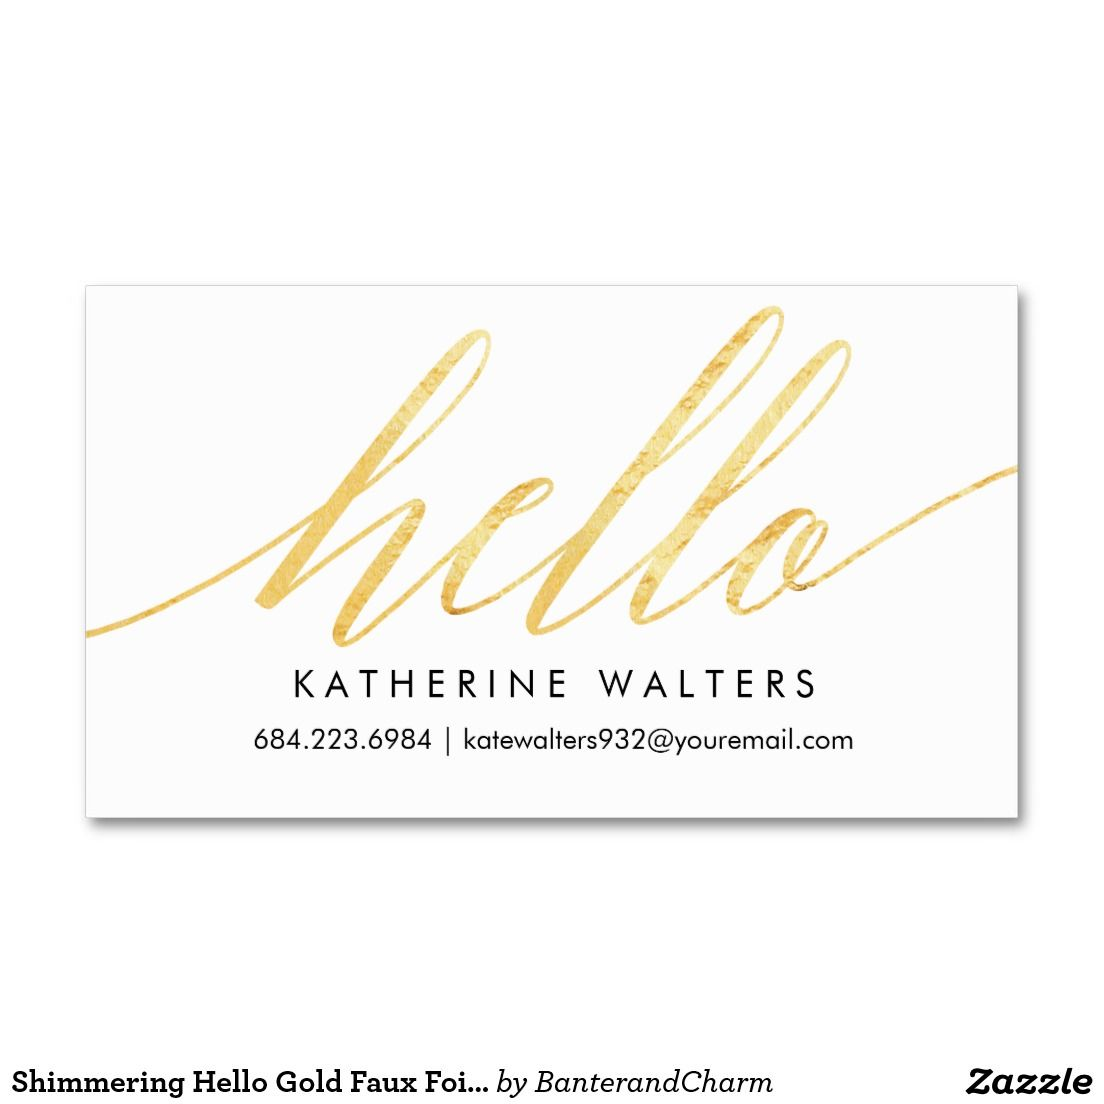 Shimmering hello gold faux foil calling card calling cards and shimmering hello gold faux foil calling card pack of standard business cards colourmoves